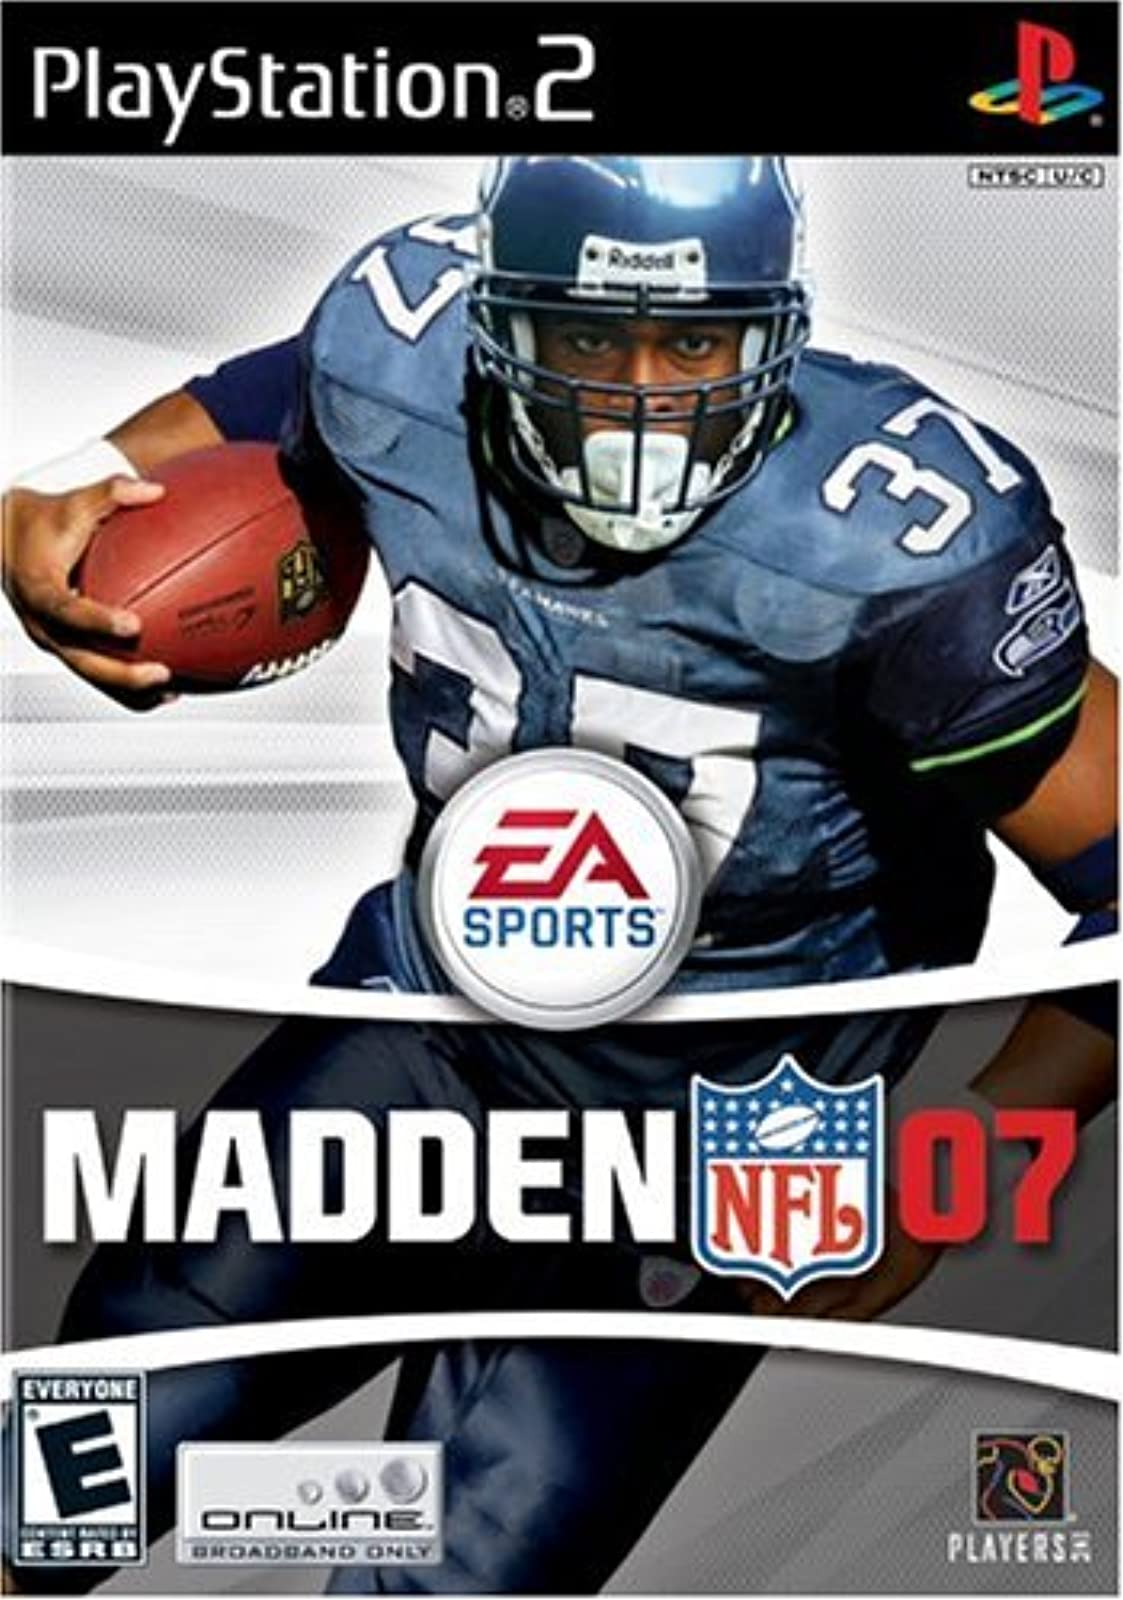 Madden NFL 07 For PlayStation 2 PS2 Football